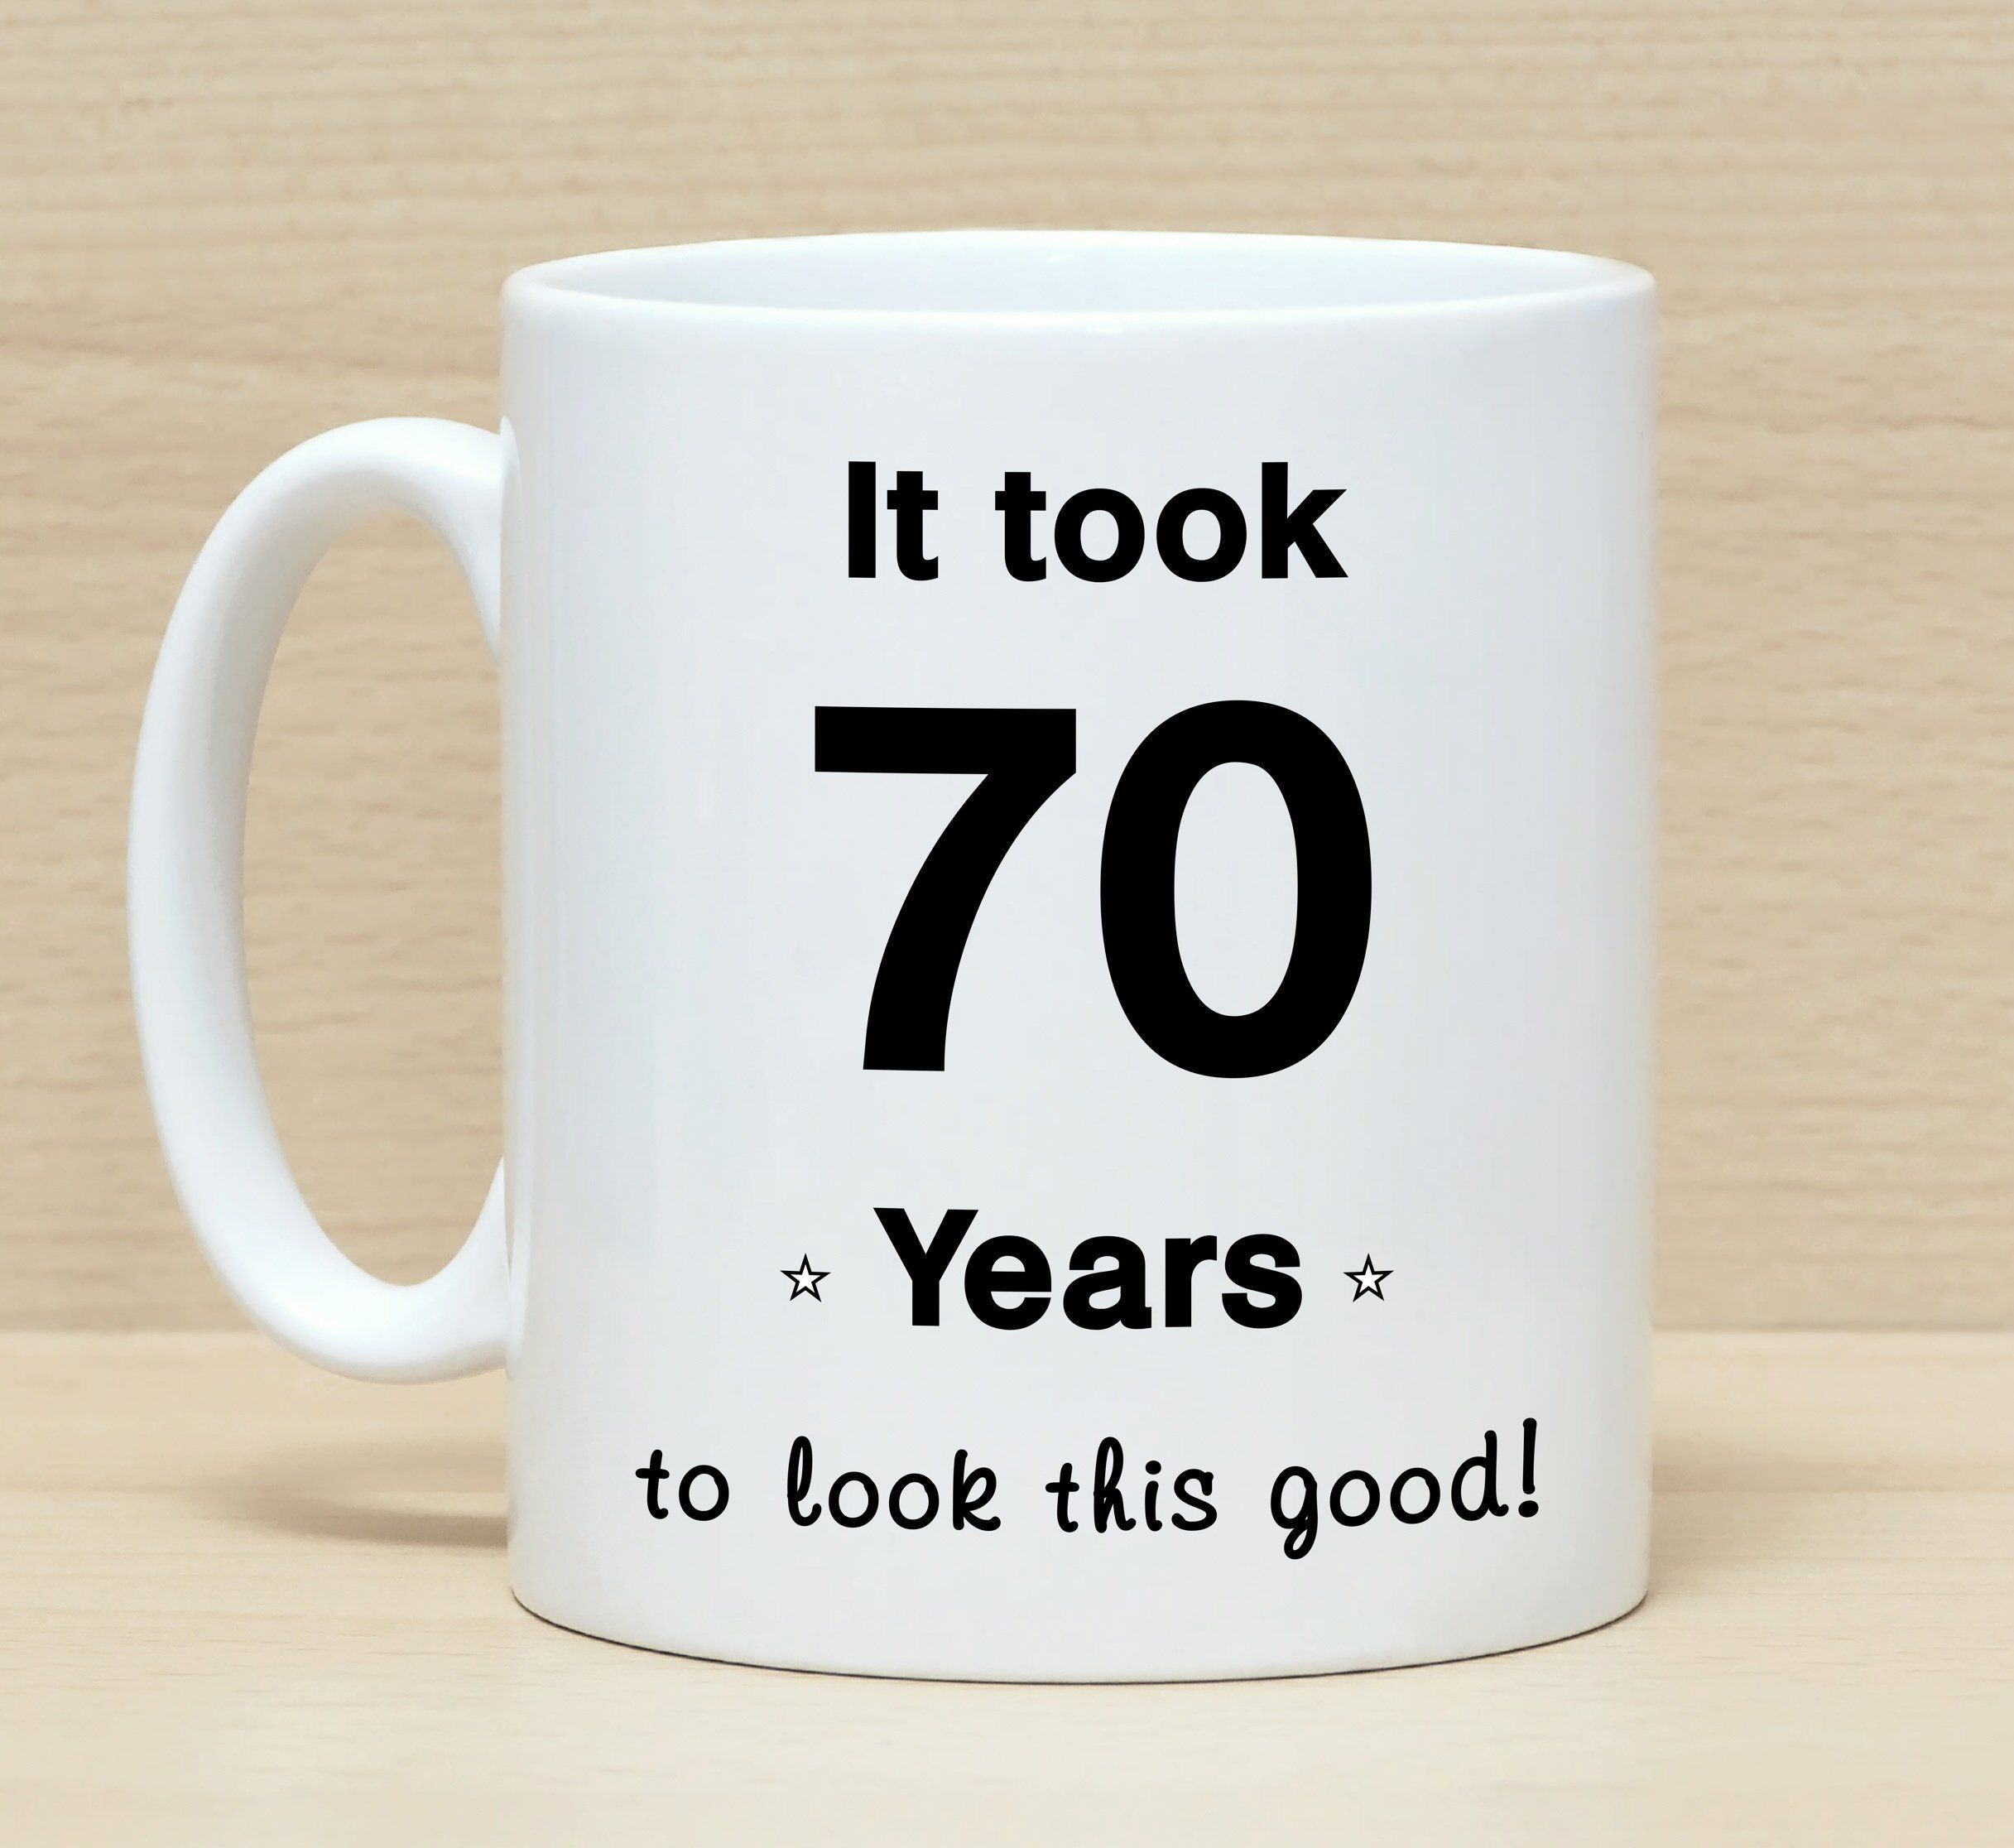 70th Birthday Mug Gift Mugs GiftFunny For Men Women Funny By SuburbanCottageUK